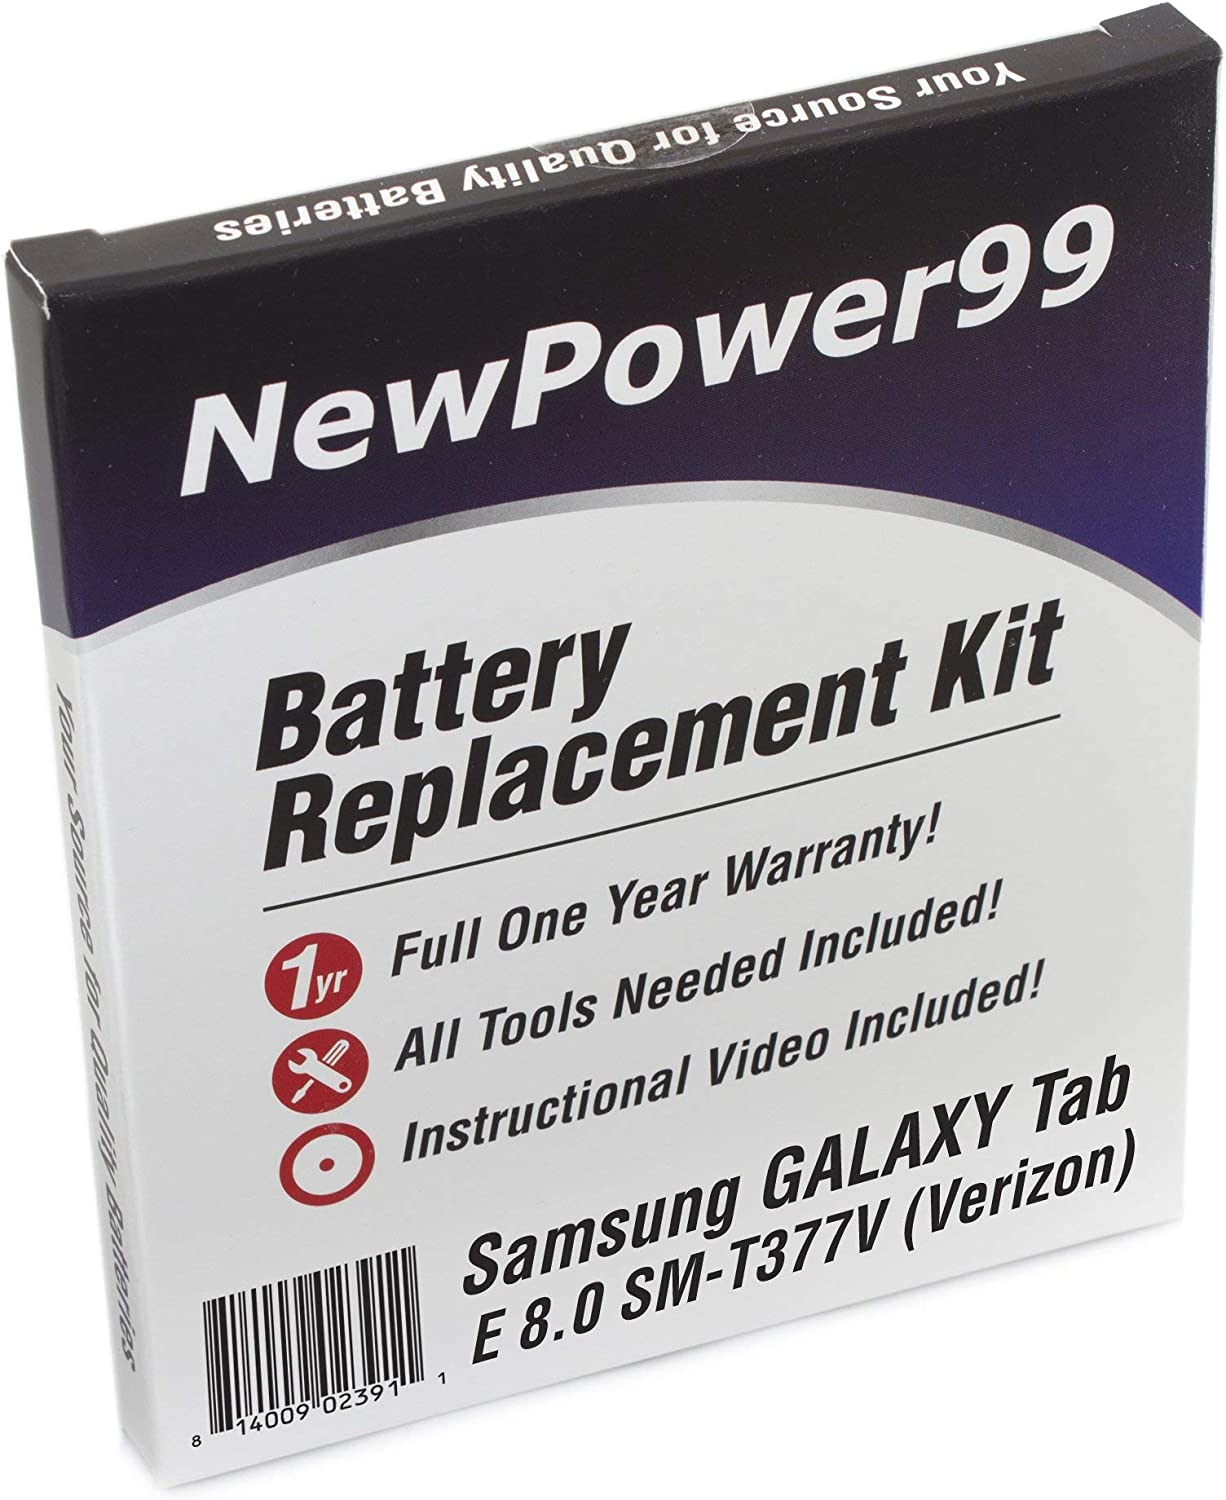 Verizon Instructions and Tools for Samsung Galaxy Tab E 8.0 SM-T377V NewPower99 Battery Replacement Kit with Battery